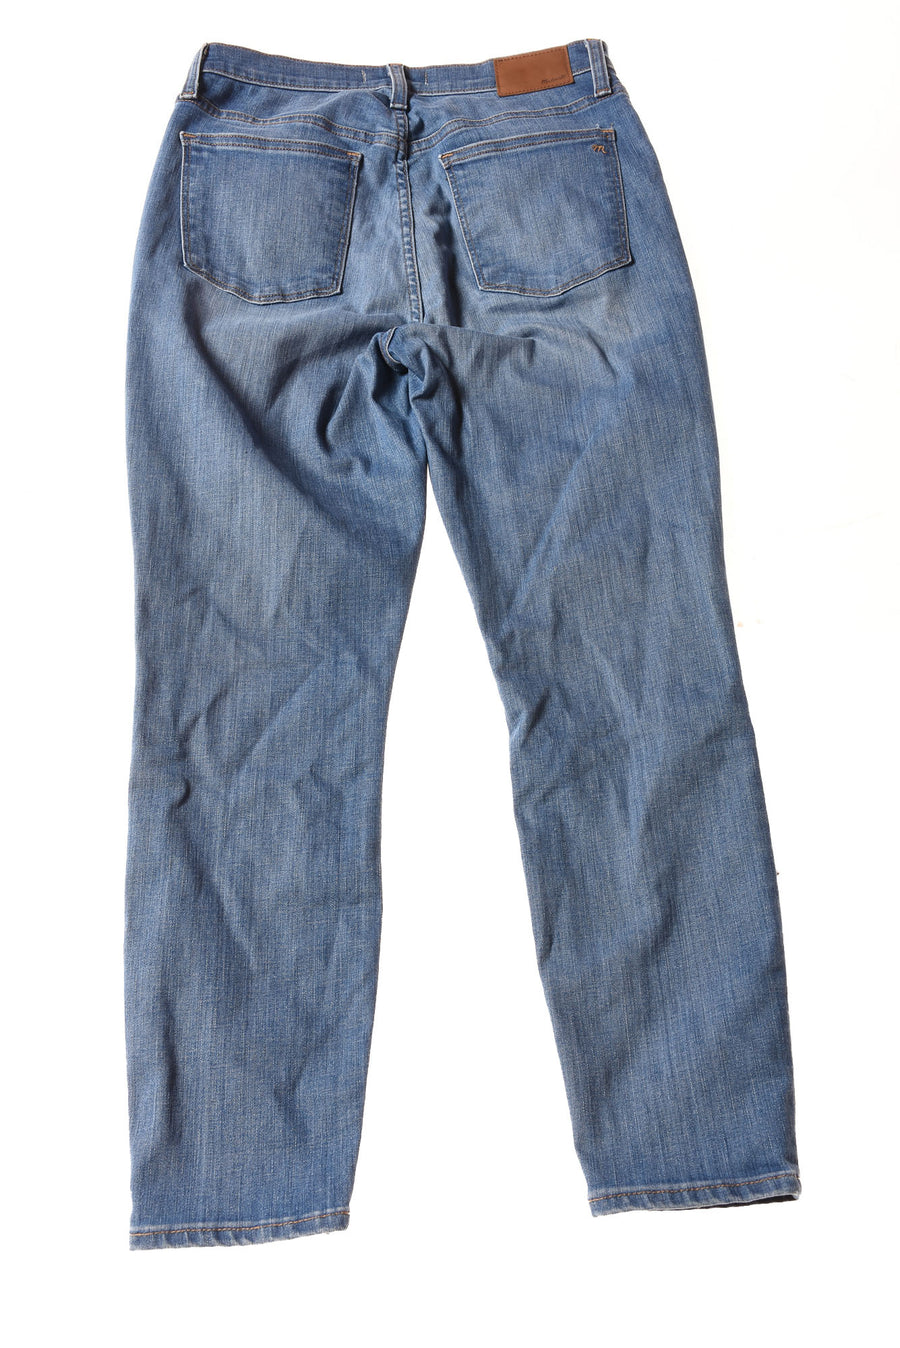 Women's Jeans By Madewell